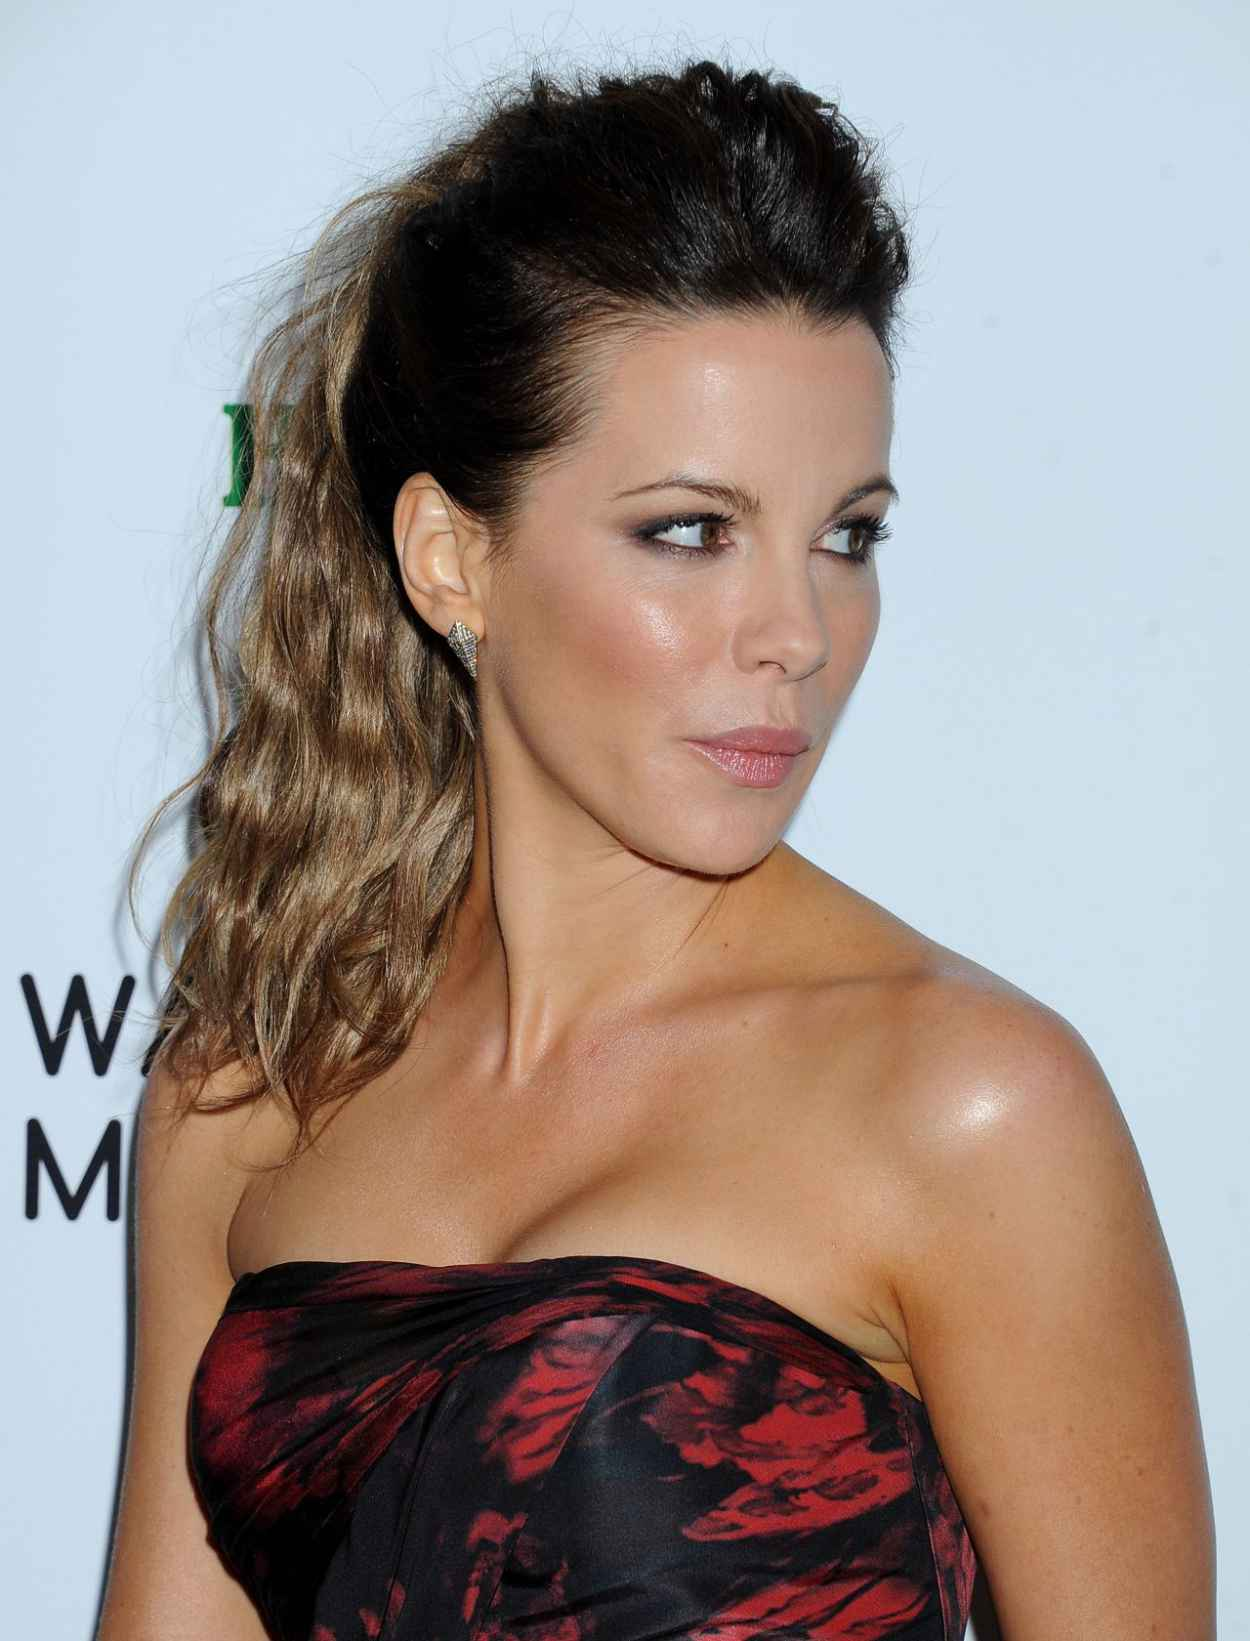 Kate Beckinsale at Warner Music Group Annual GRAMMY Celebration, Los Angeles January 2015-1